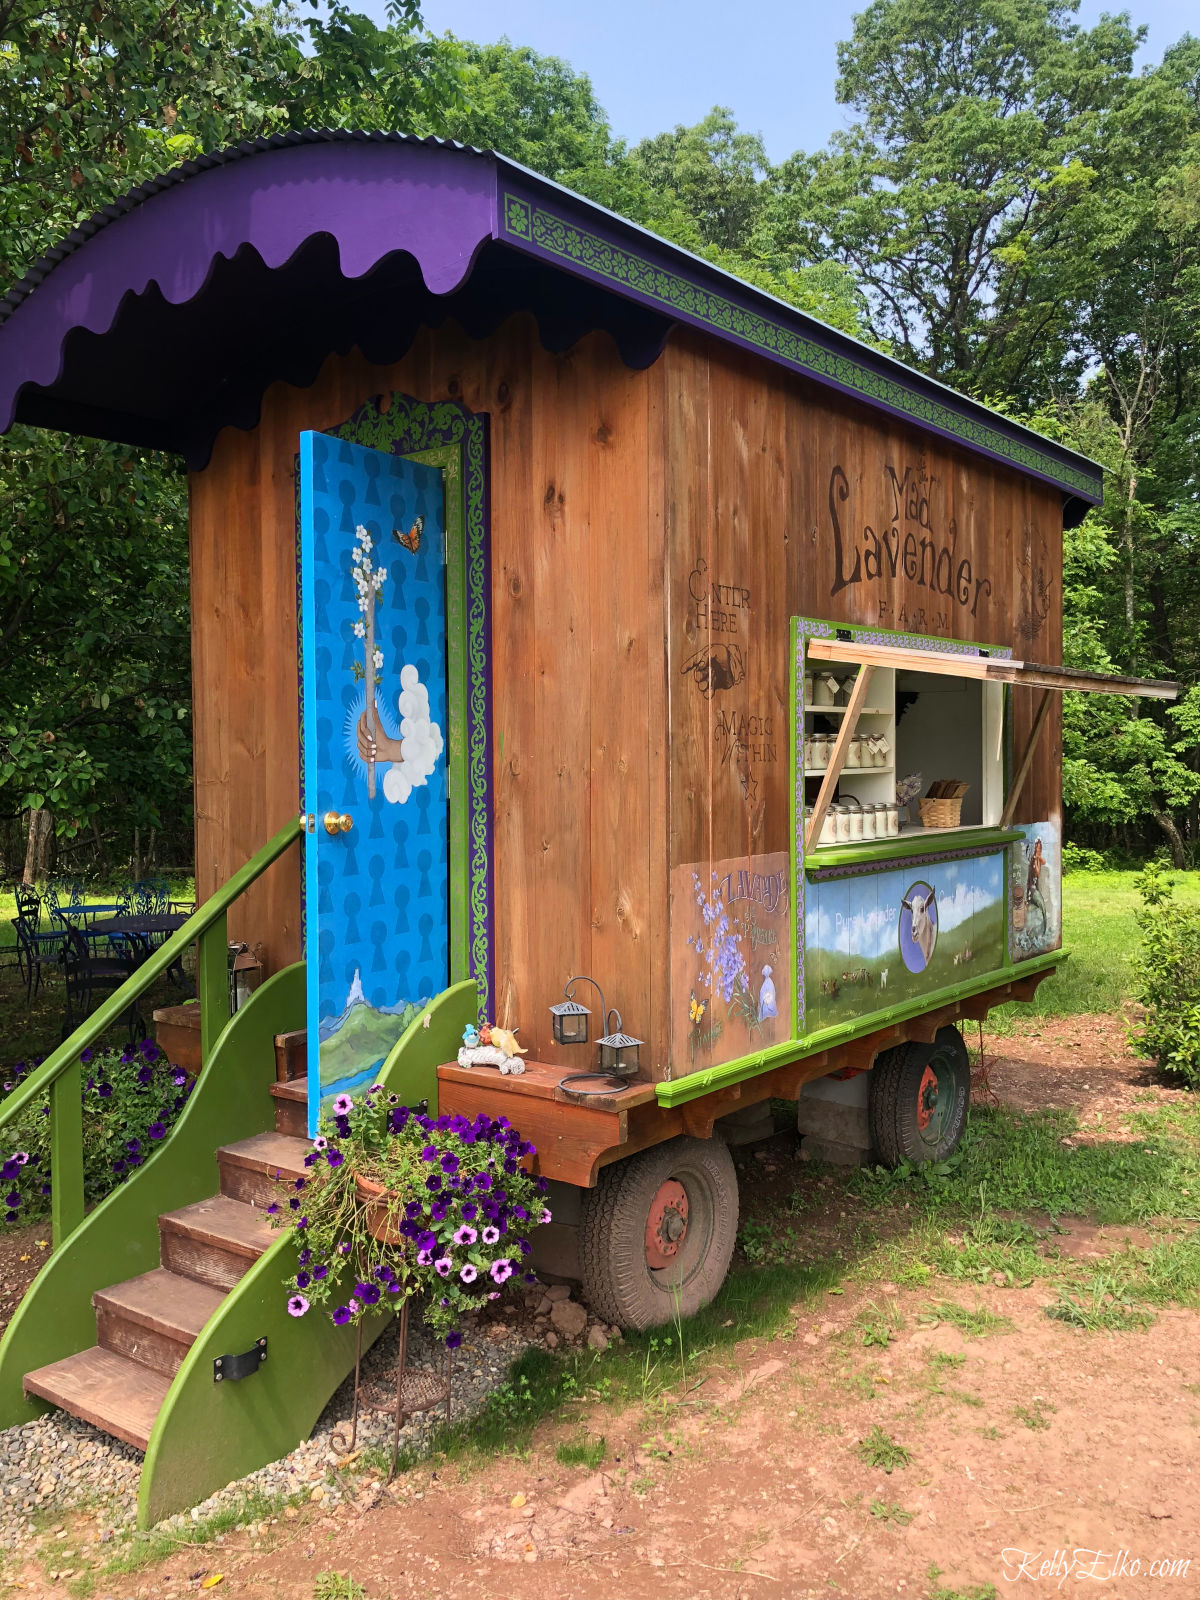 Adorable little store that looks like a train caboose kellyelko.com #gardens #gardening #gardenstructure #tinyhouse